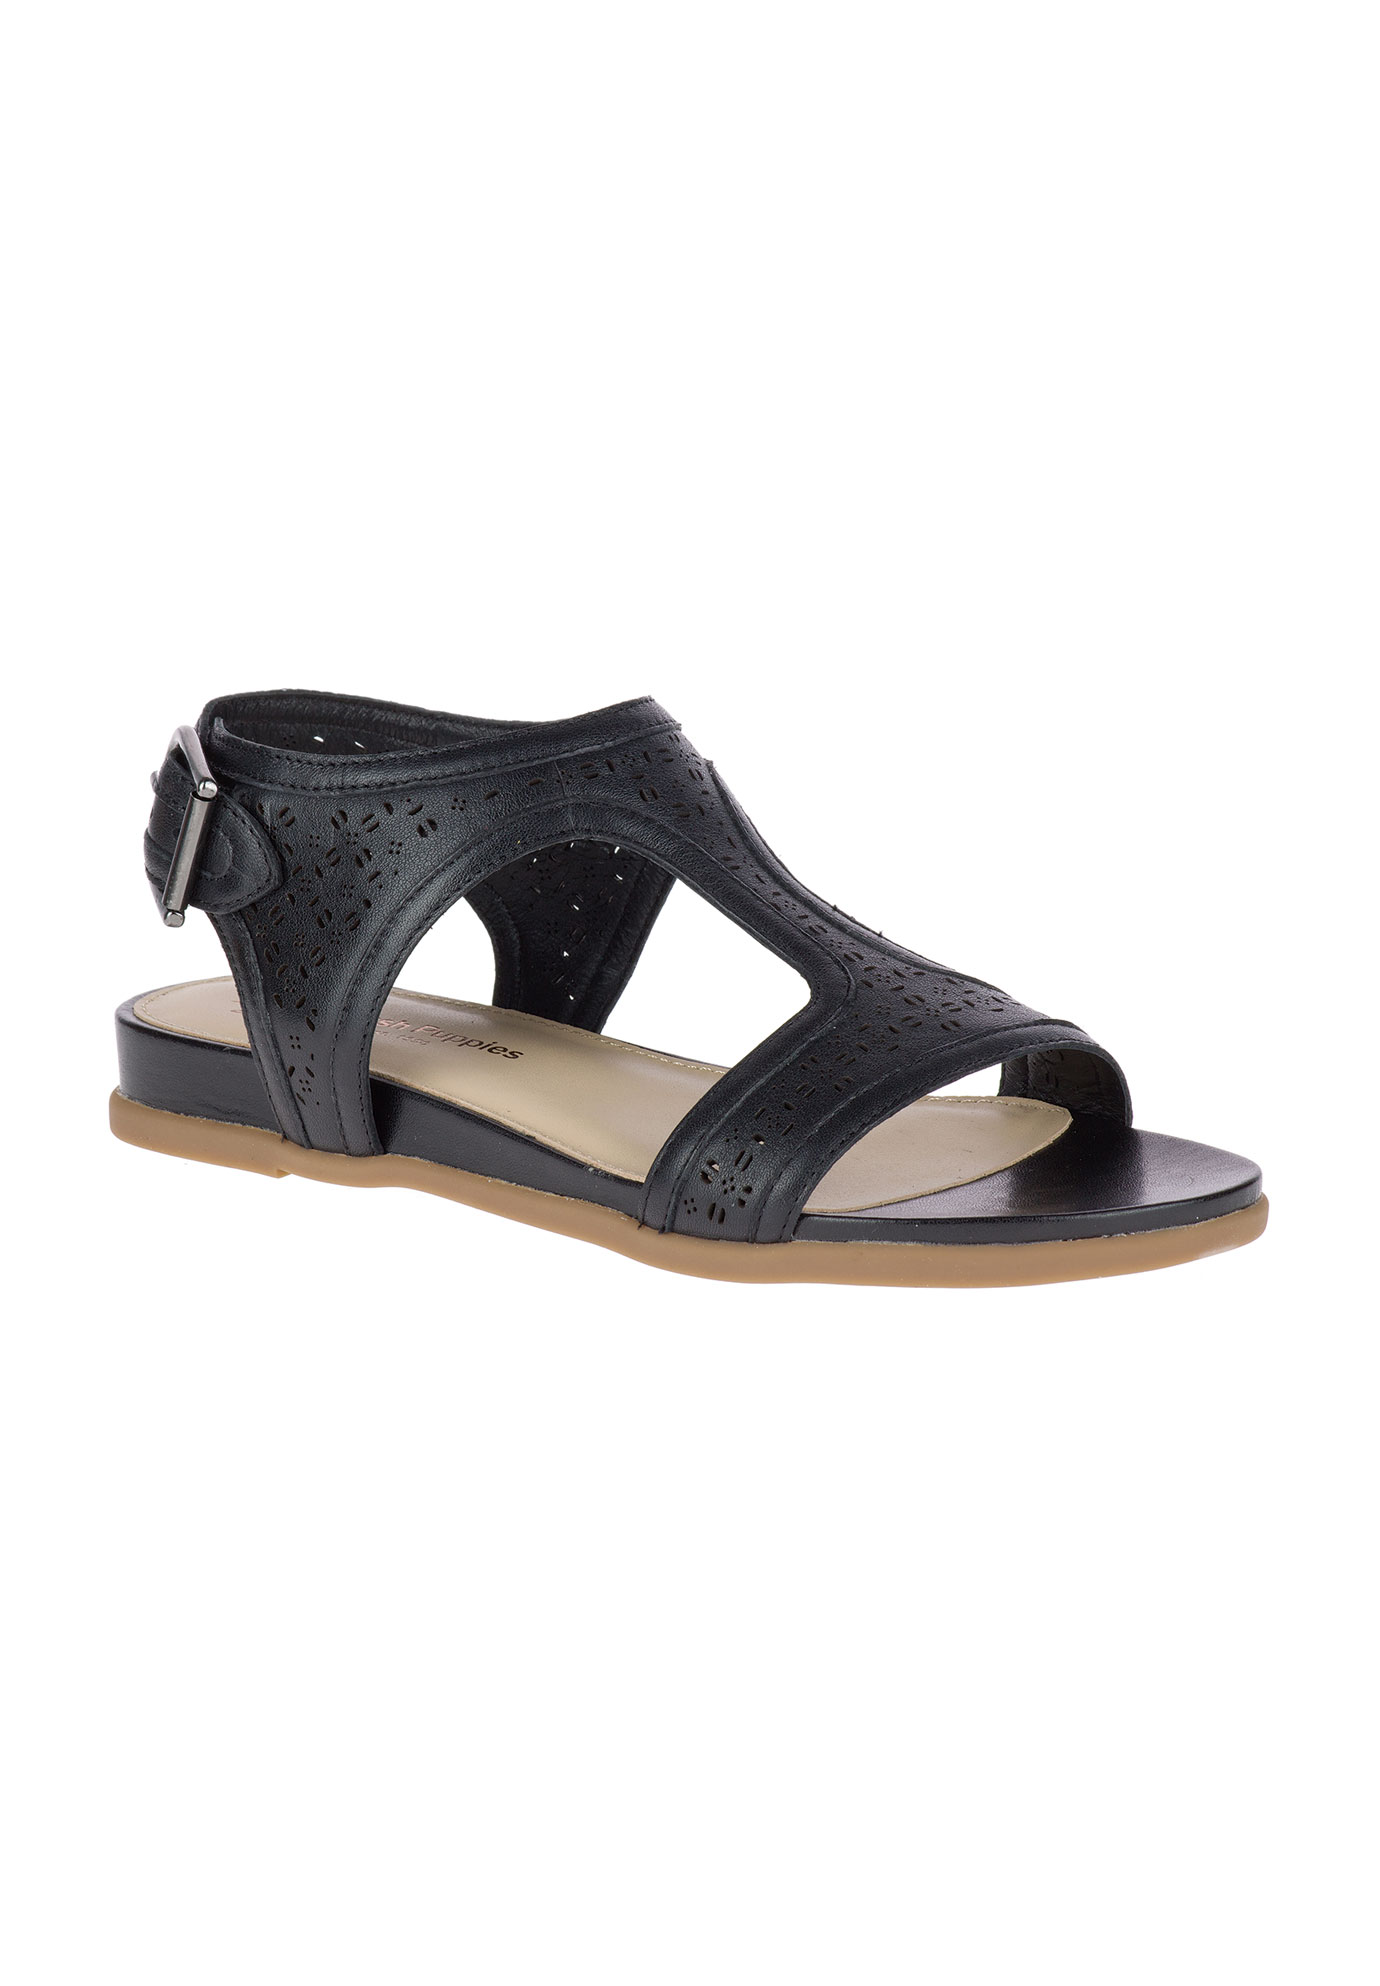 buy cheap 100% authentic Dalmation T-Strap Sandal by Hush Puppies® sale cheap CLBI9F6oR8